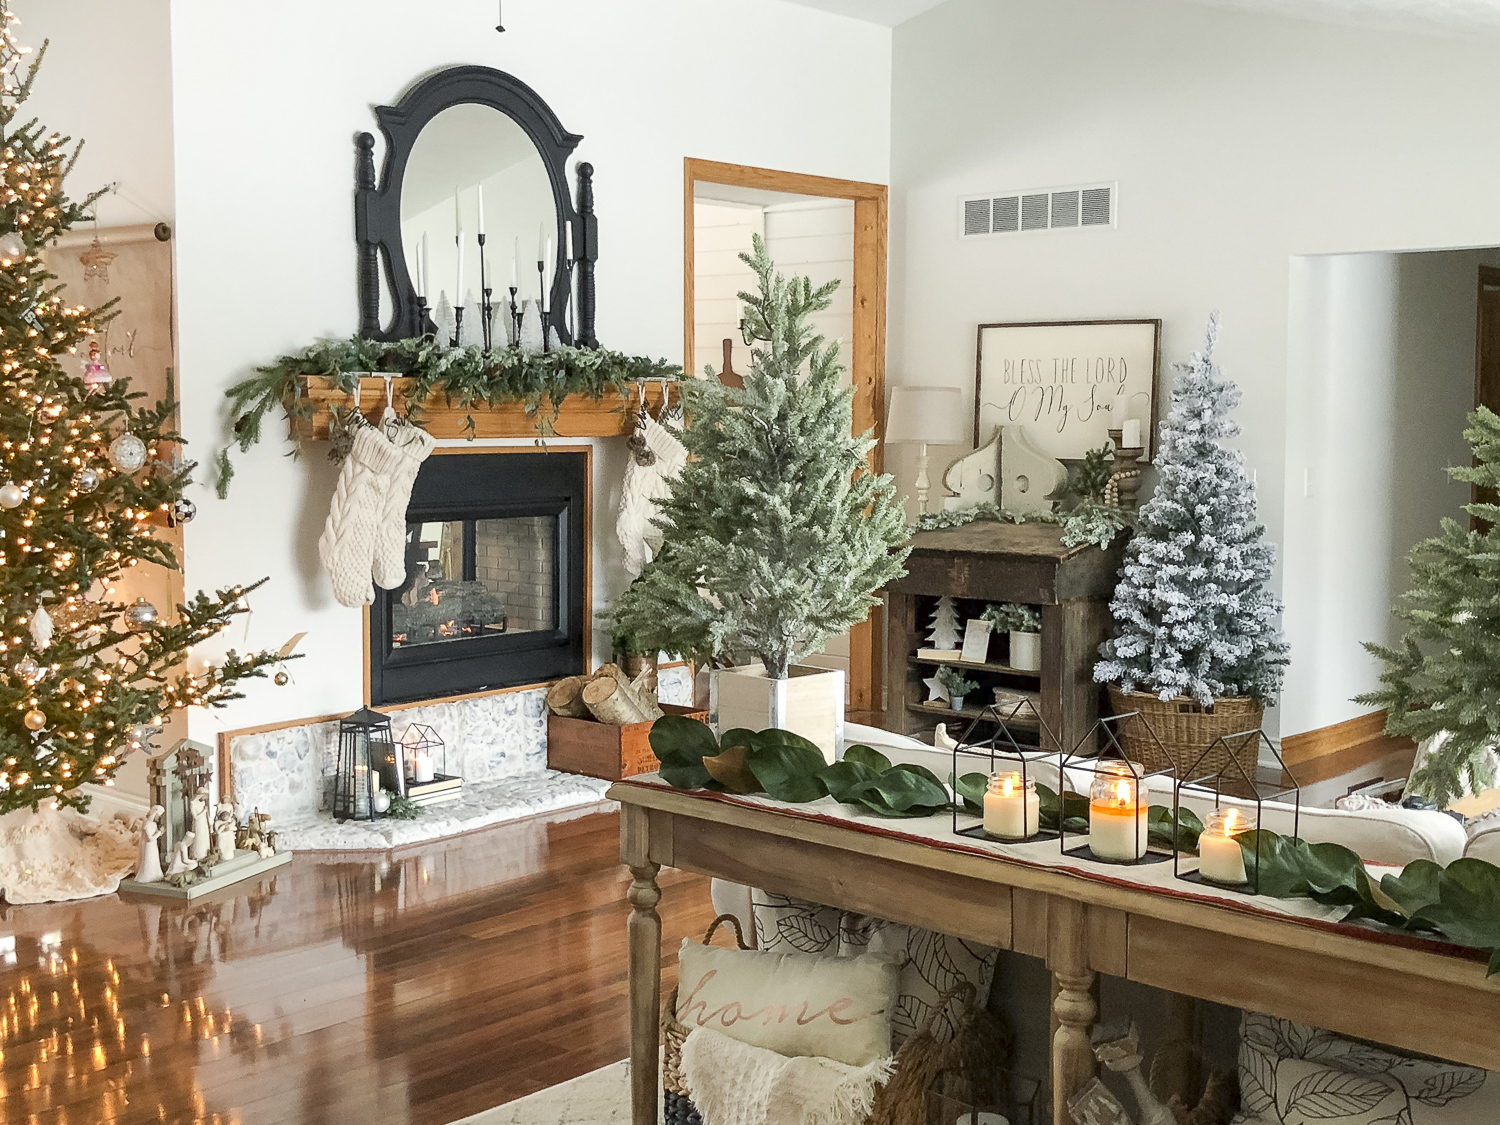 How To Have Beautiful Winter Home Décor All Season Long